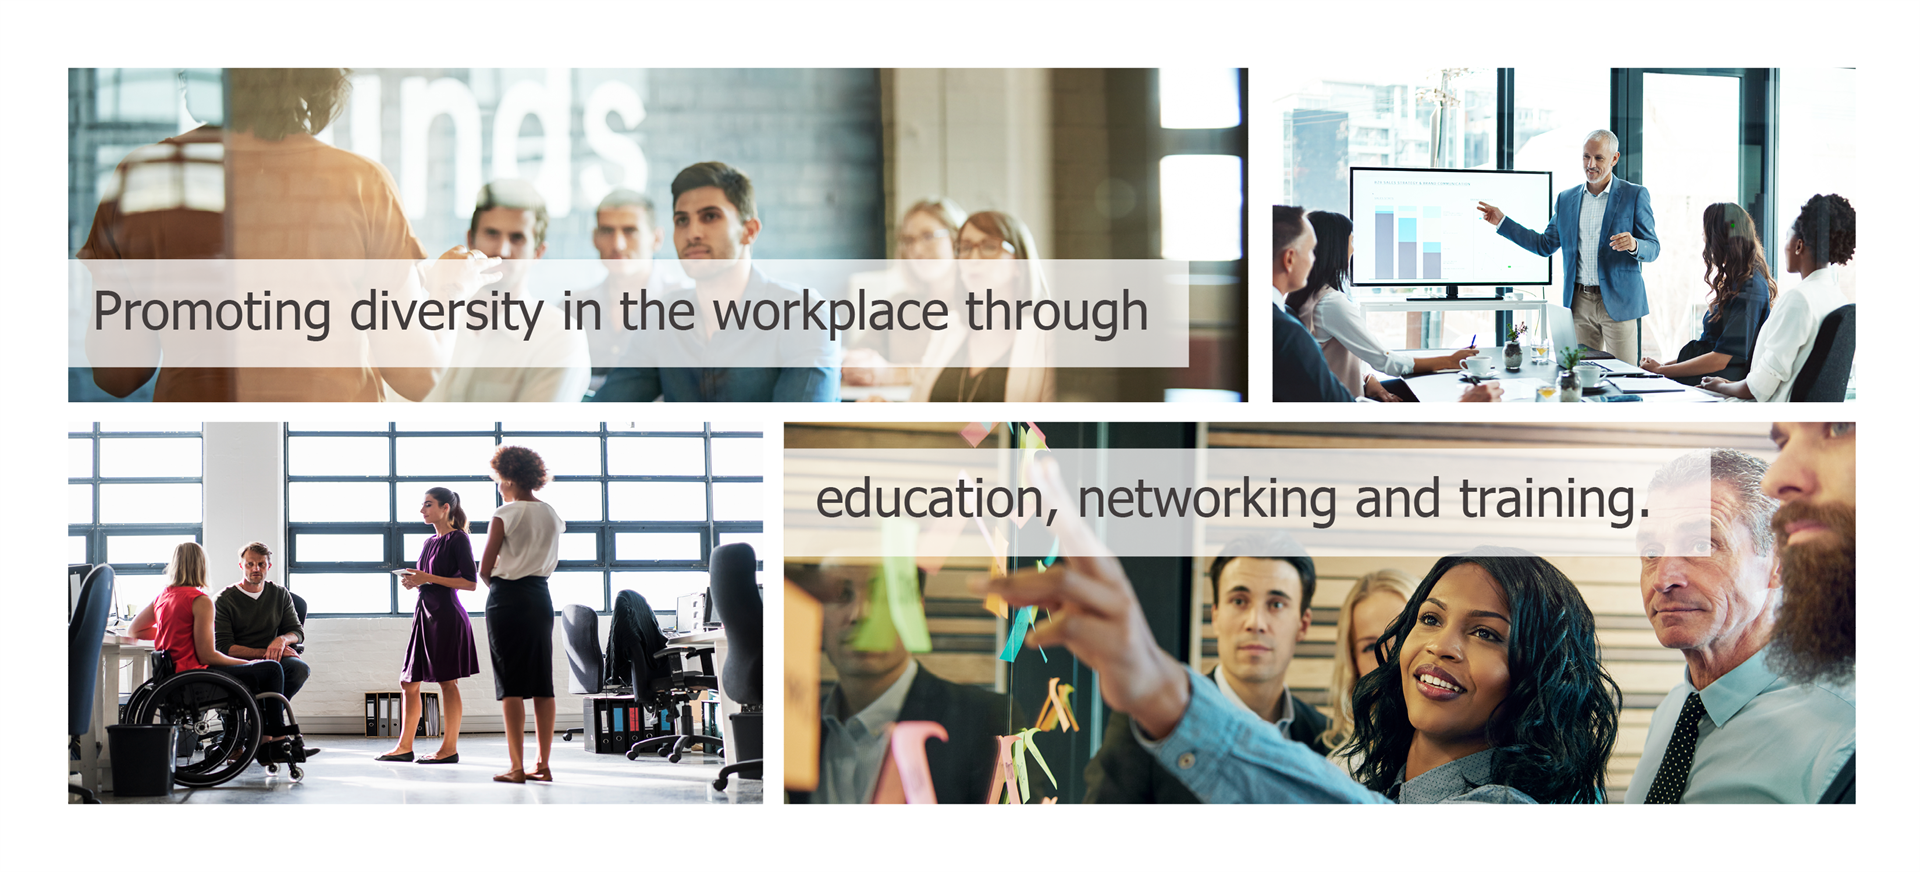 Promoting diversity in the workplace through education, networking and training.